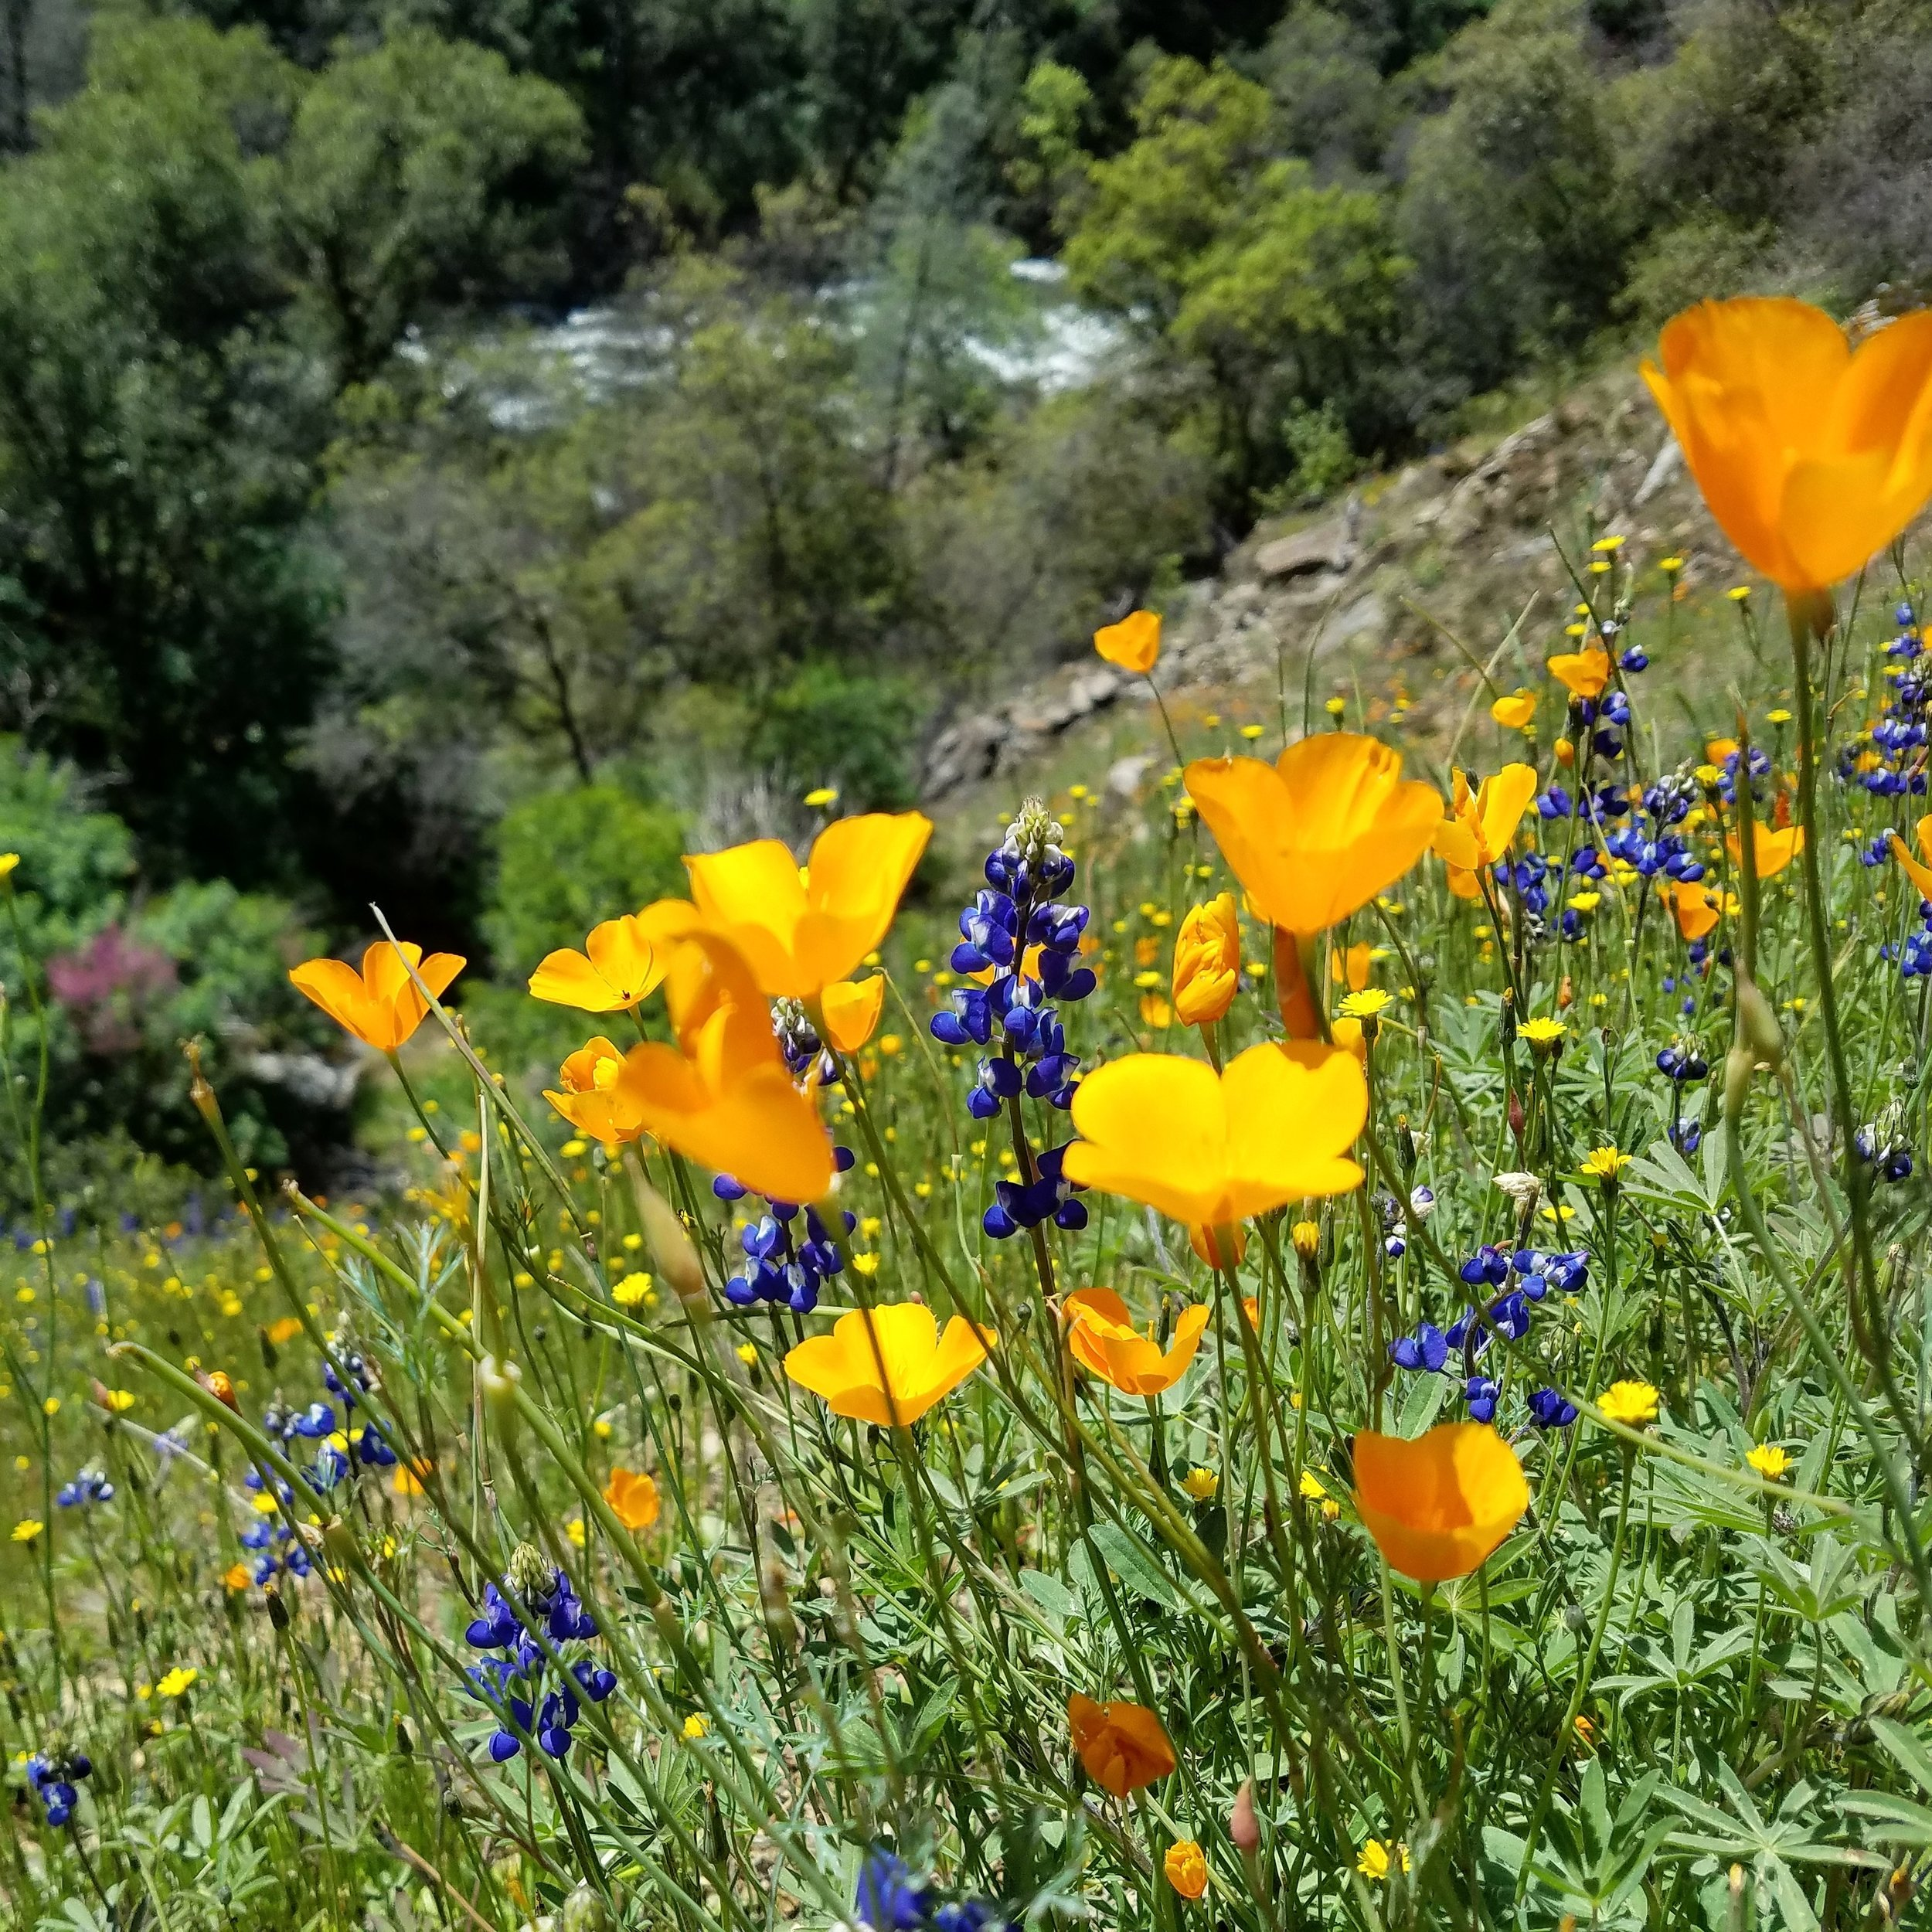 California Poppies   (Eschscholzia californica)   and  Harlequin Lupine  (Lupinus stiversii)   at Hite's Cove just outside of the park.